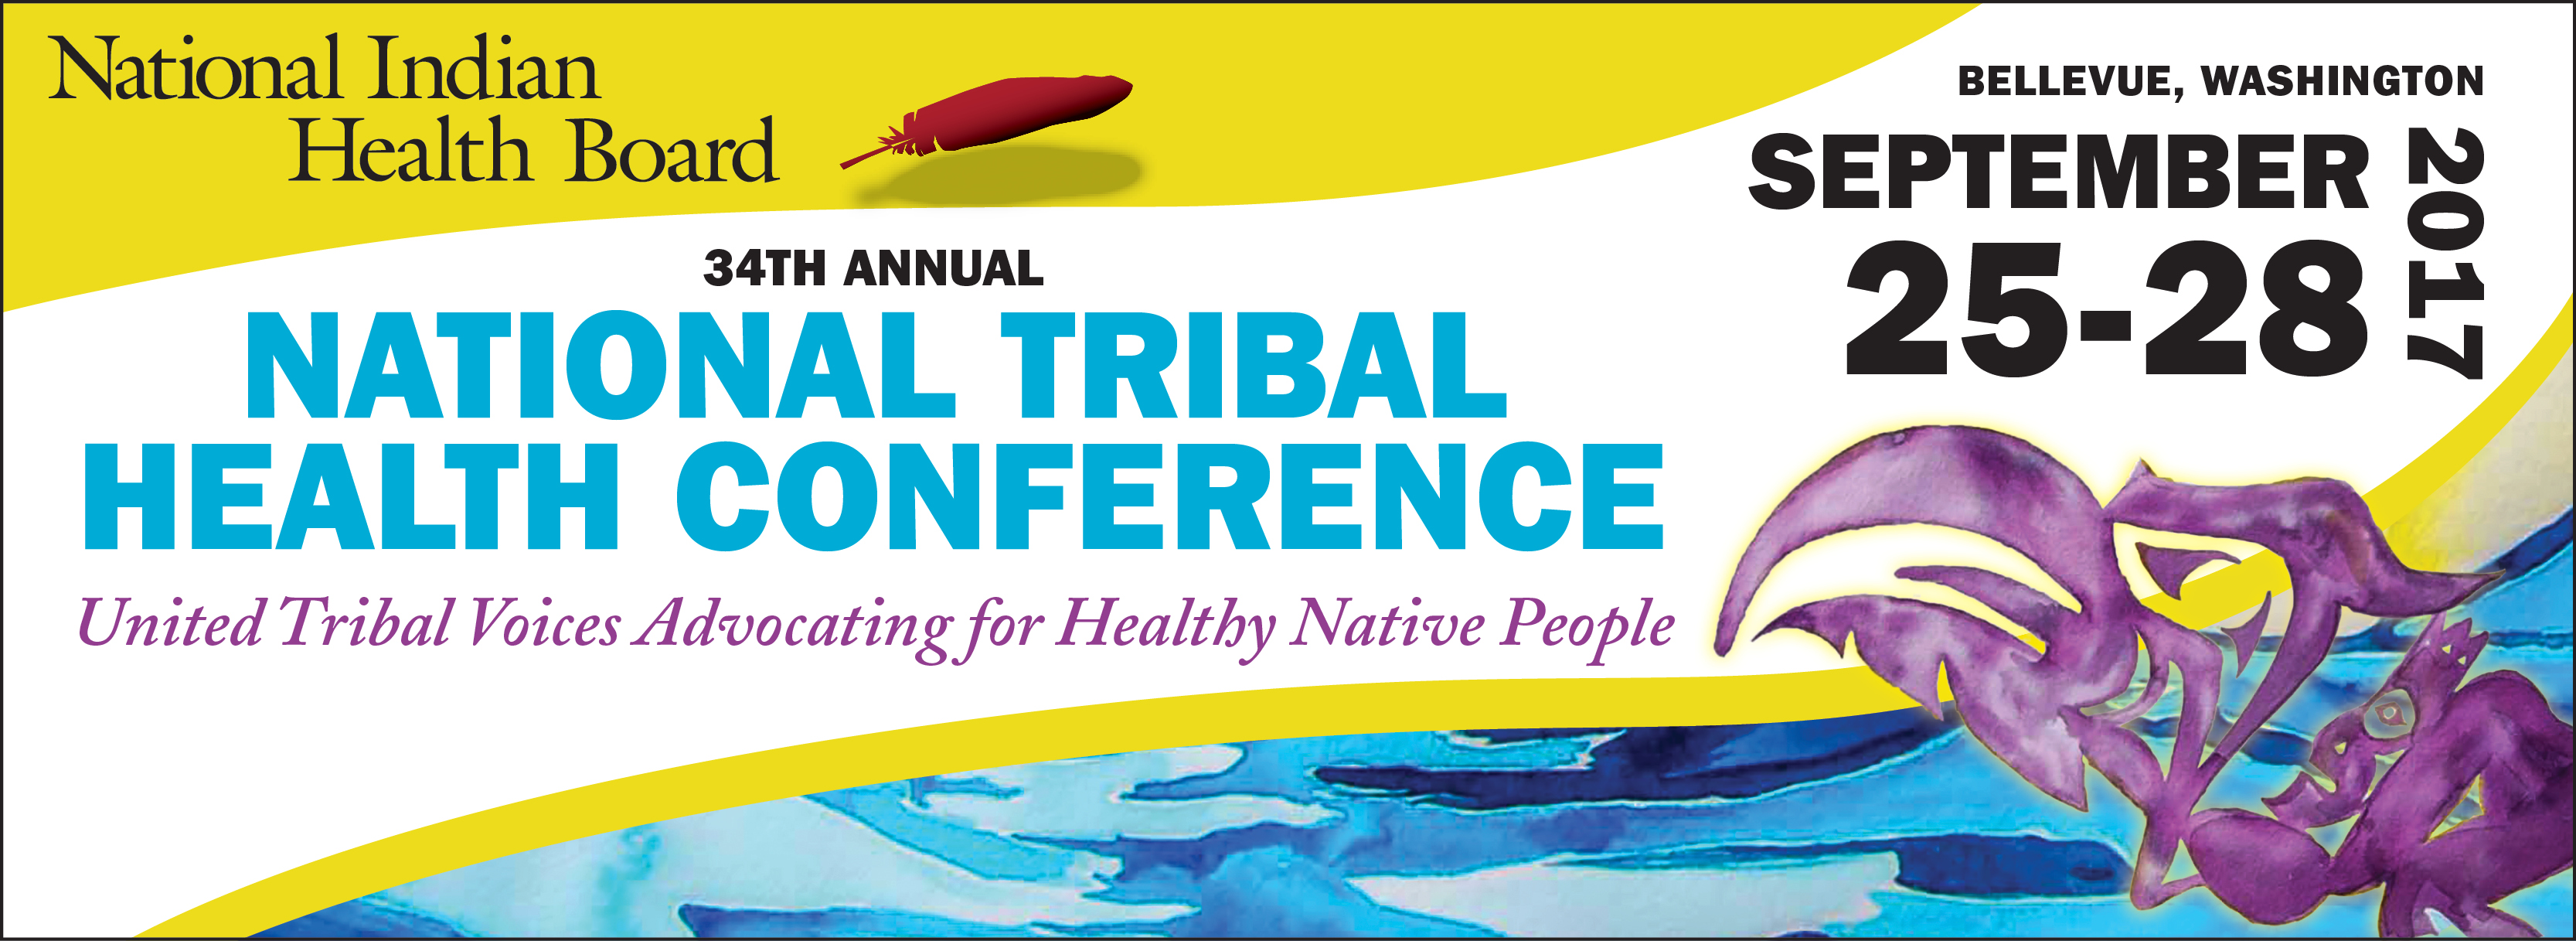 2017 National Tribal Health Conference